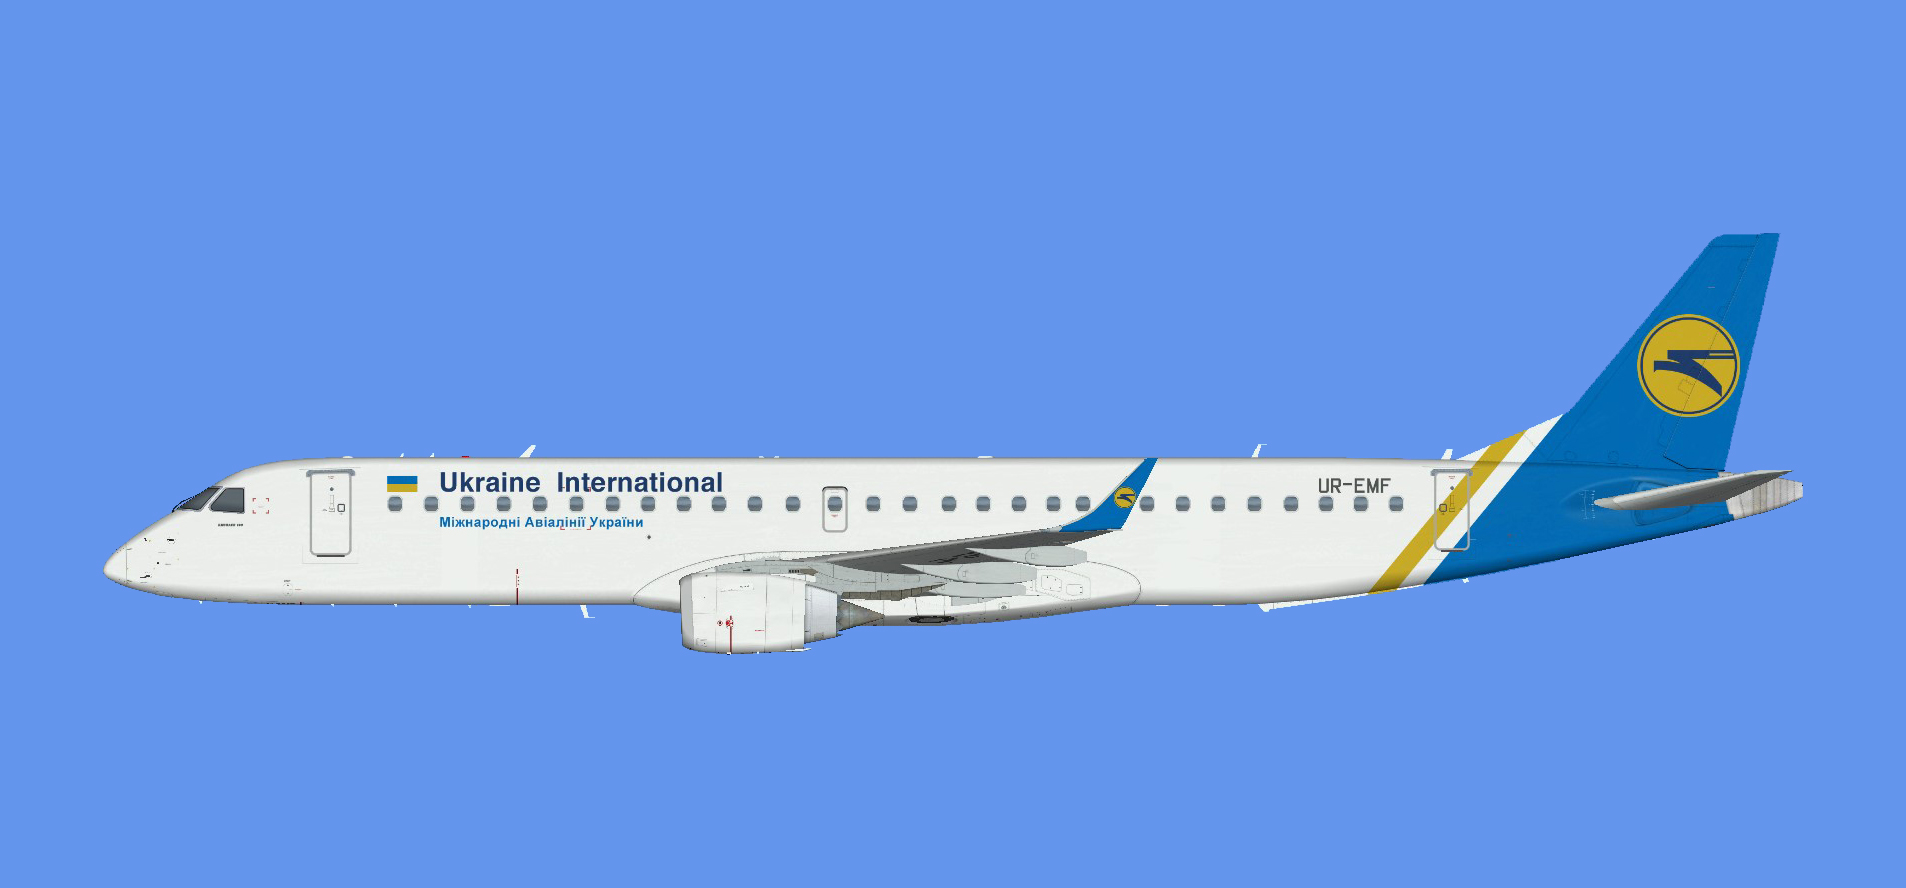 Ukraine International Embraer E-195 (FSPXAI)